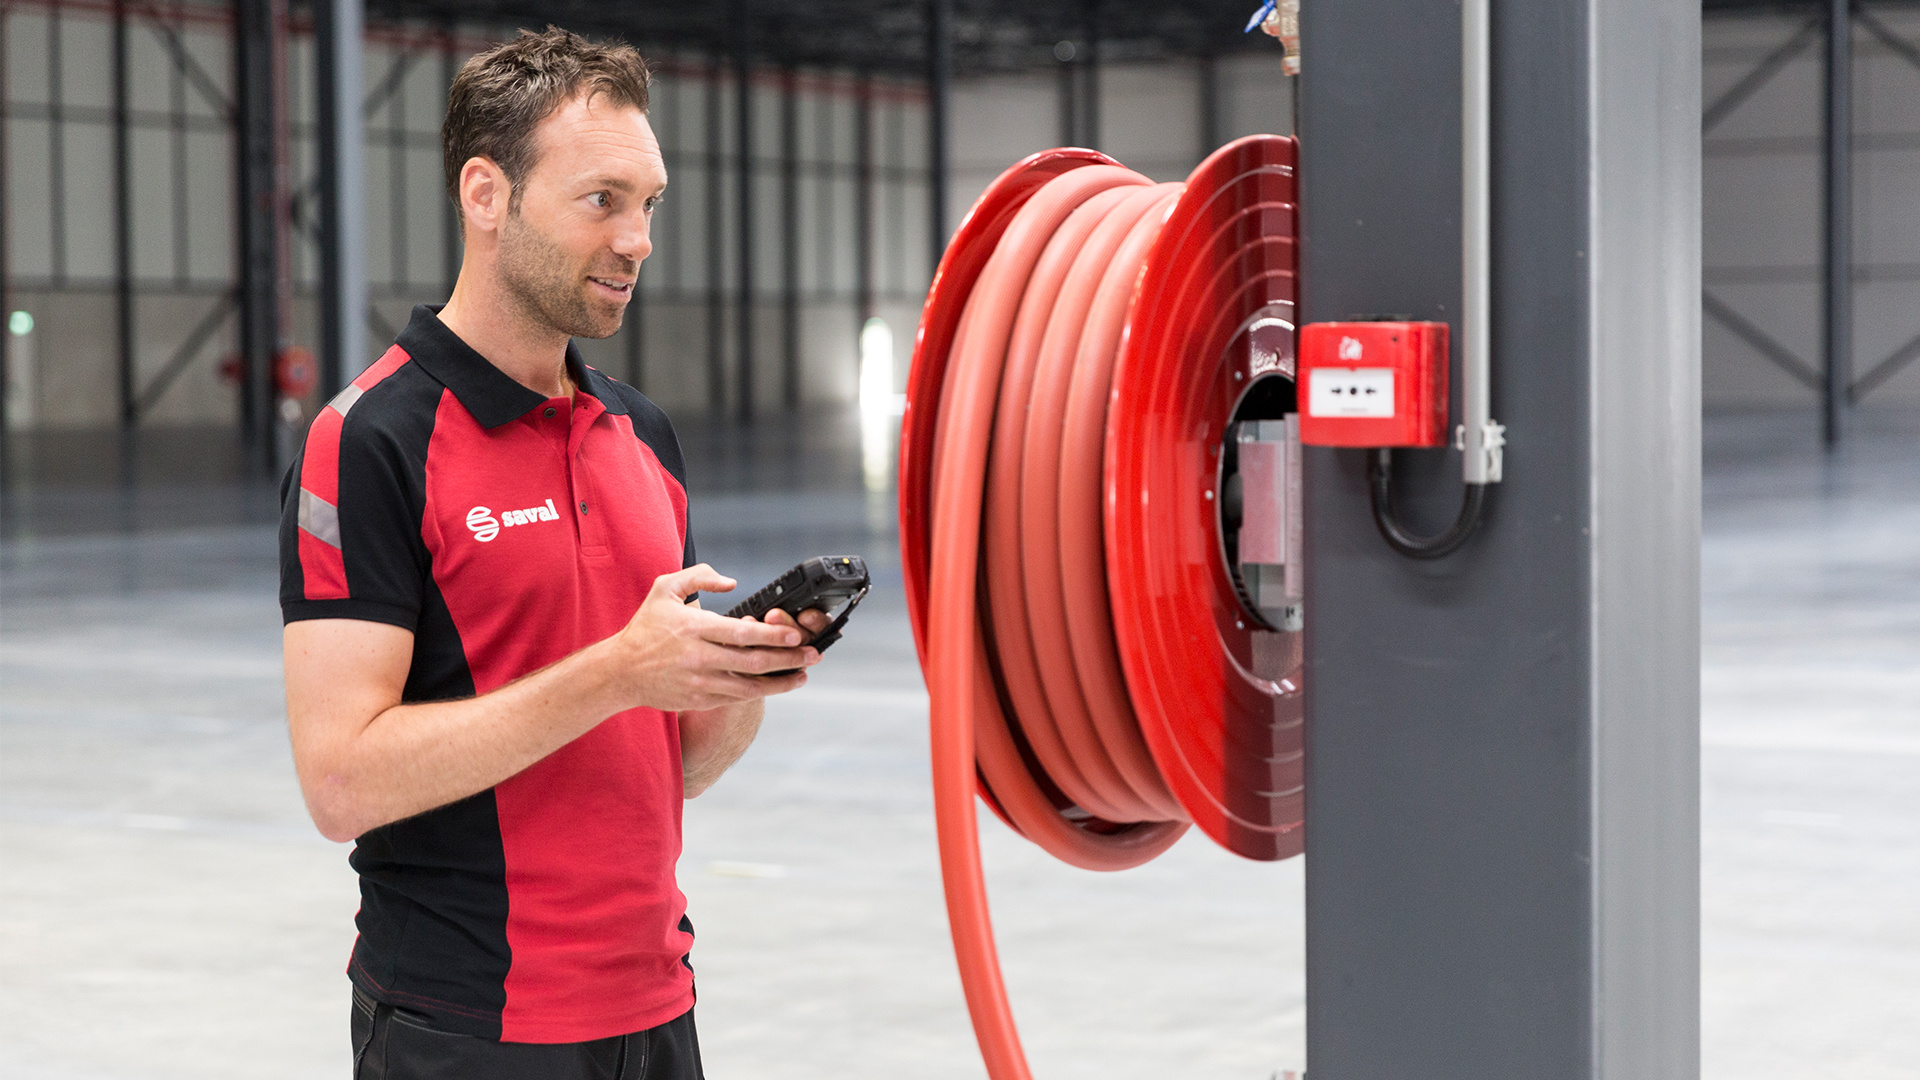 Fire hose reel maintenance